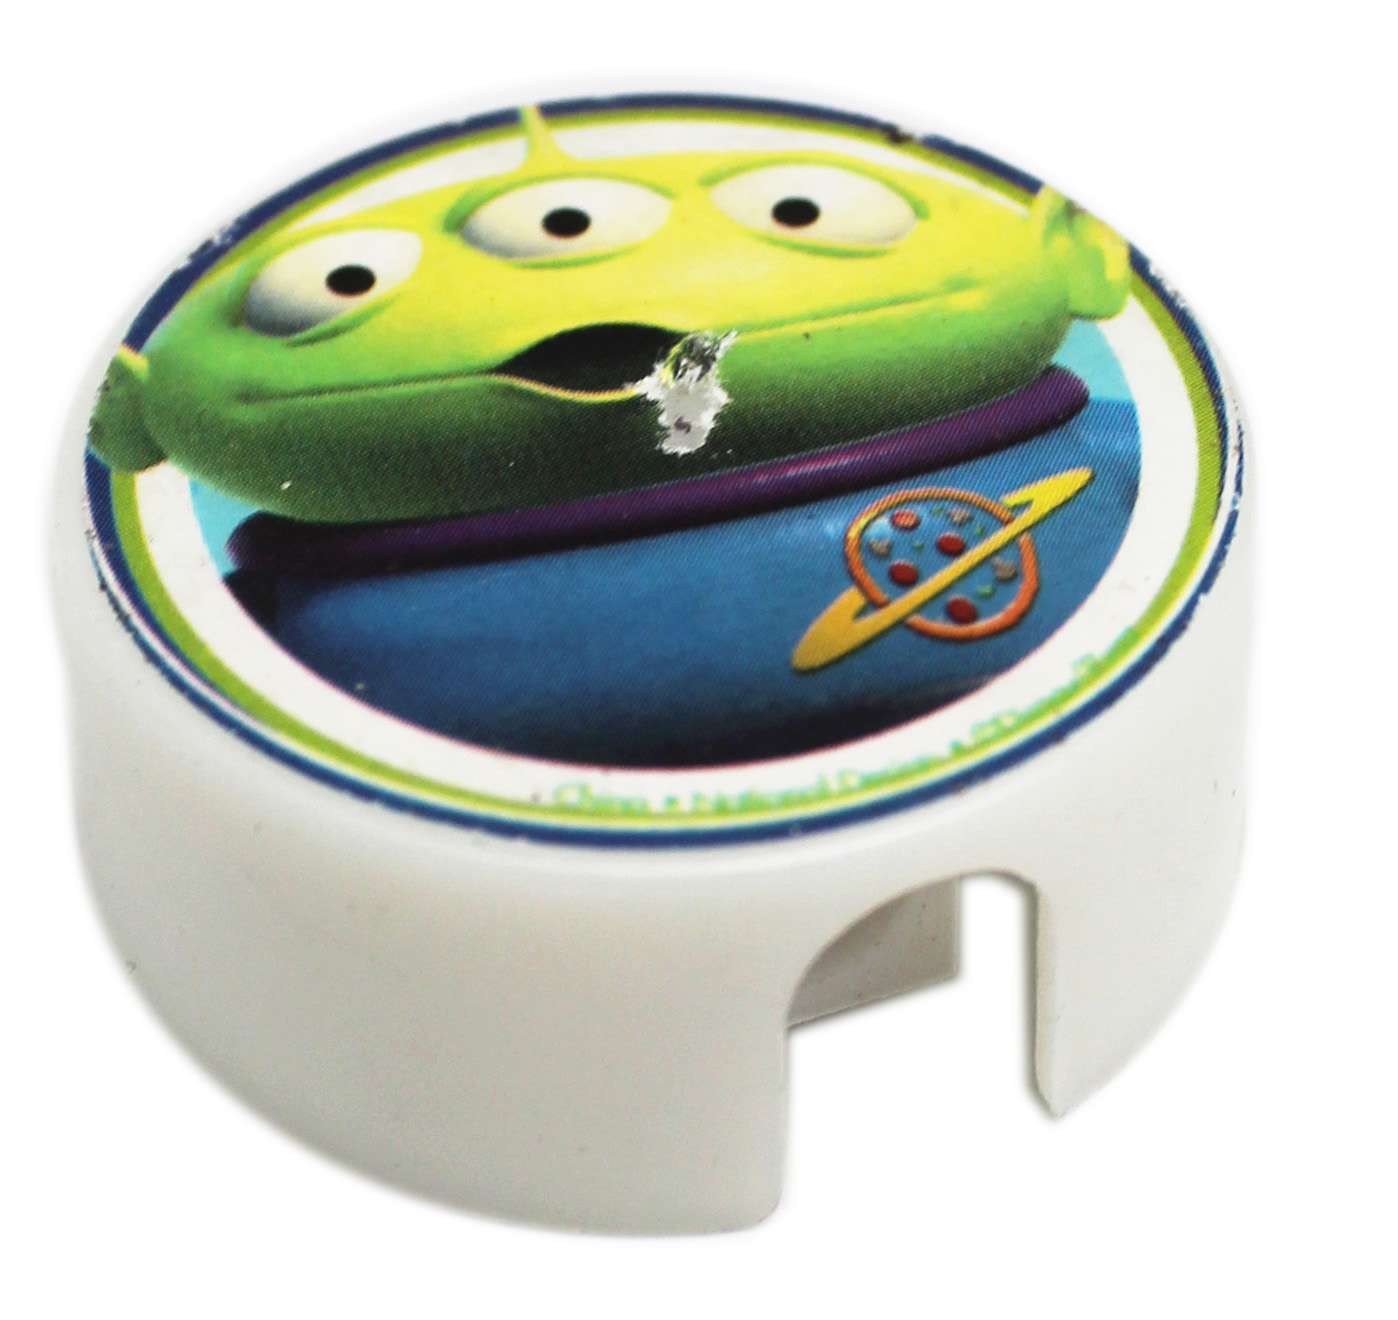 Toy Story 4 ALIEN Plush Pencil Case Stationery Item FREE SHIPPING NEW